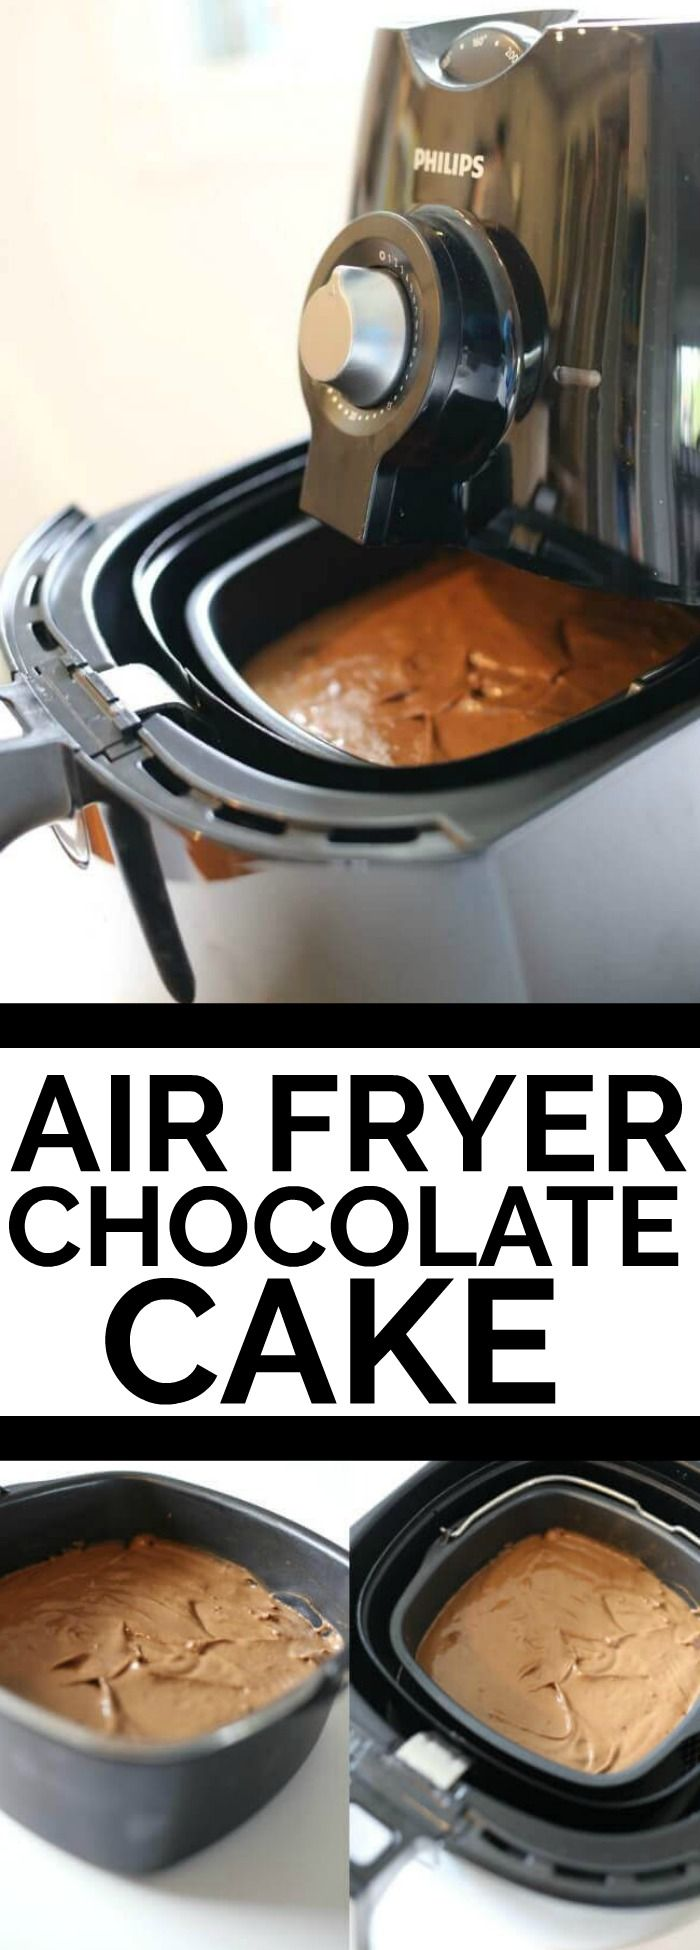 air fryer chocolate cake recipe the best way to make a